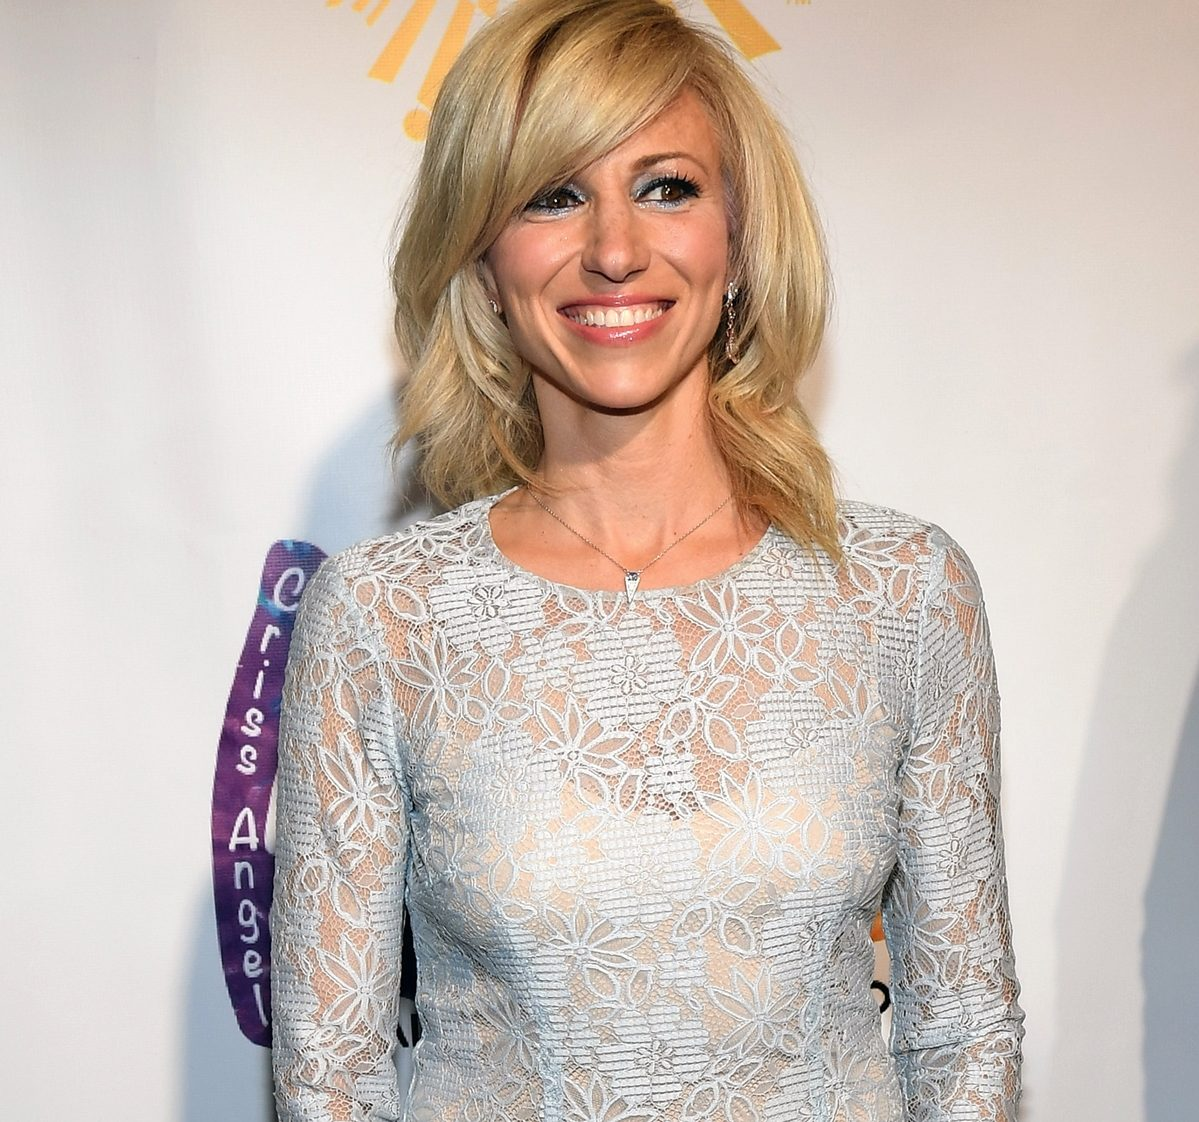 10 8 e1625215907775 Remember Debbie Gibson? Here's What She Looks Like Now!